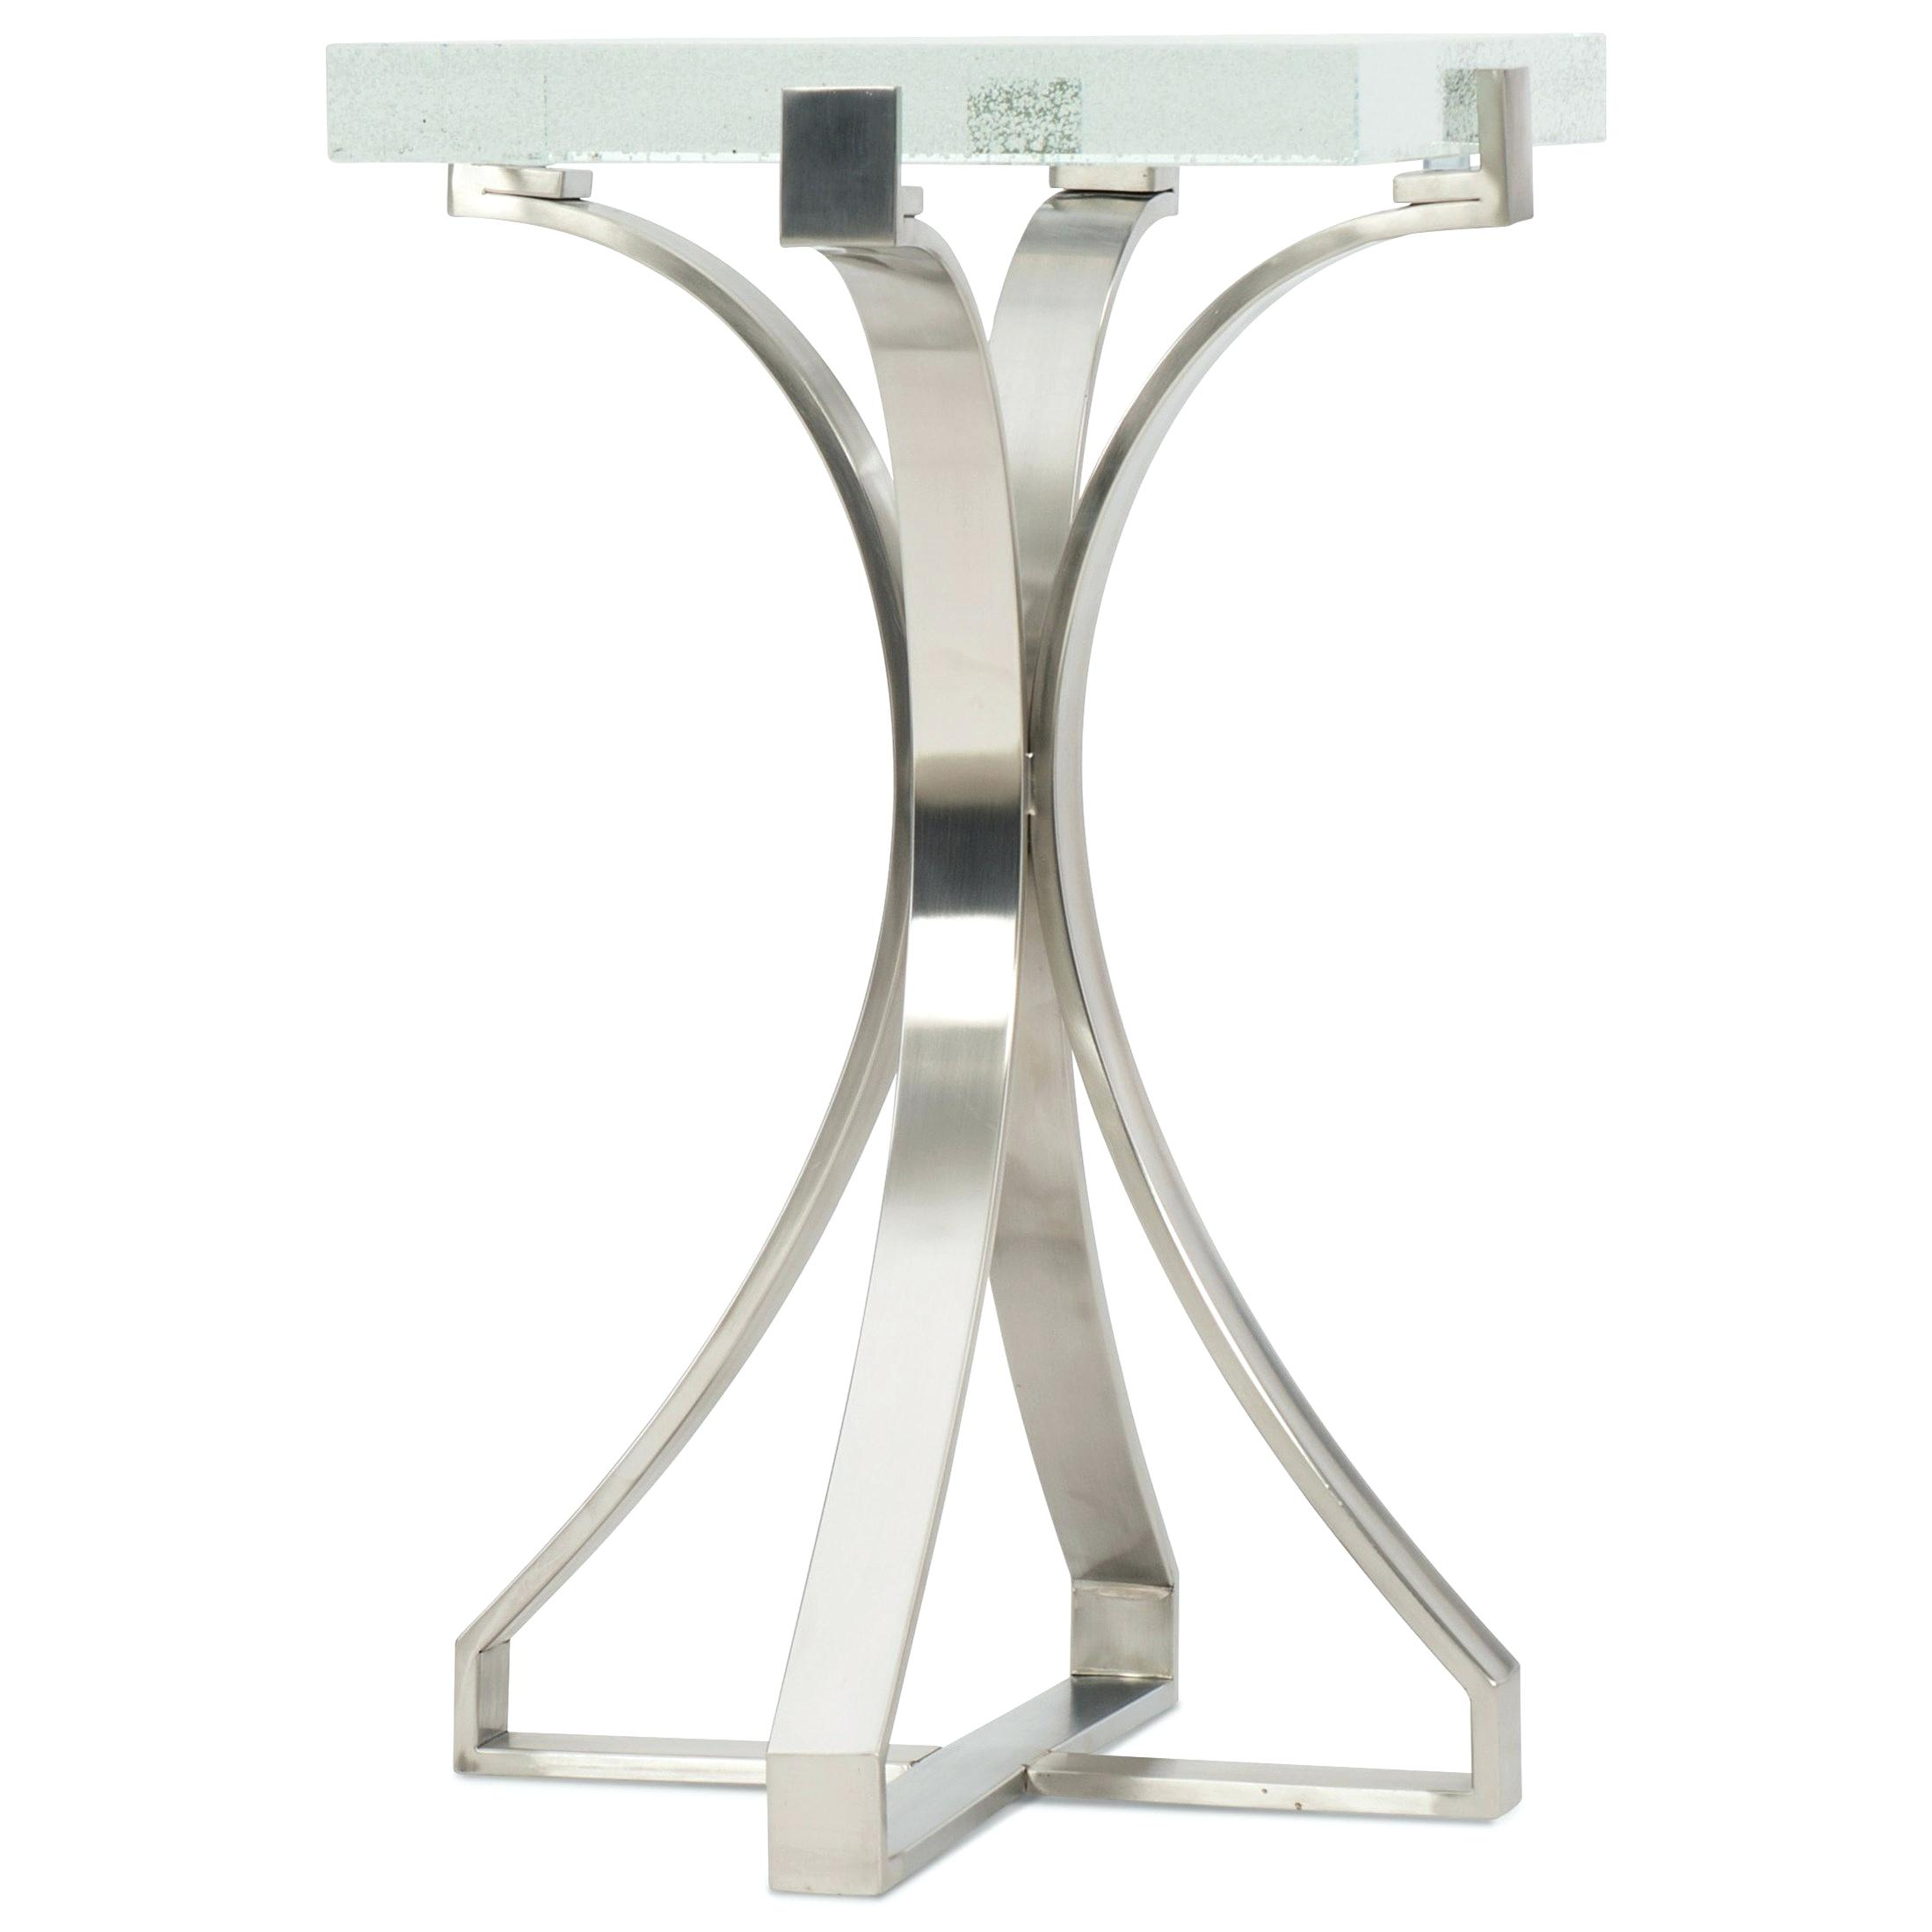 hooker accent table furniture chairs for living room accents bubble glass spanish language target fretwork trestle dining colorful side dewalt short legs west elm rabbit lamp